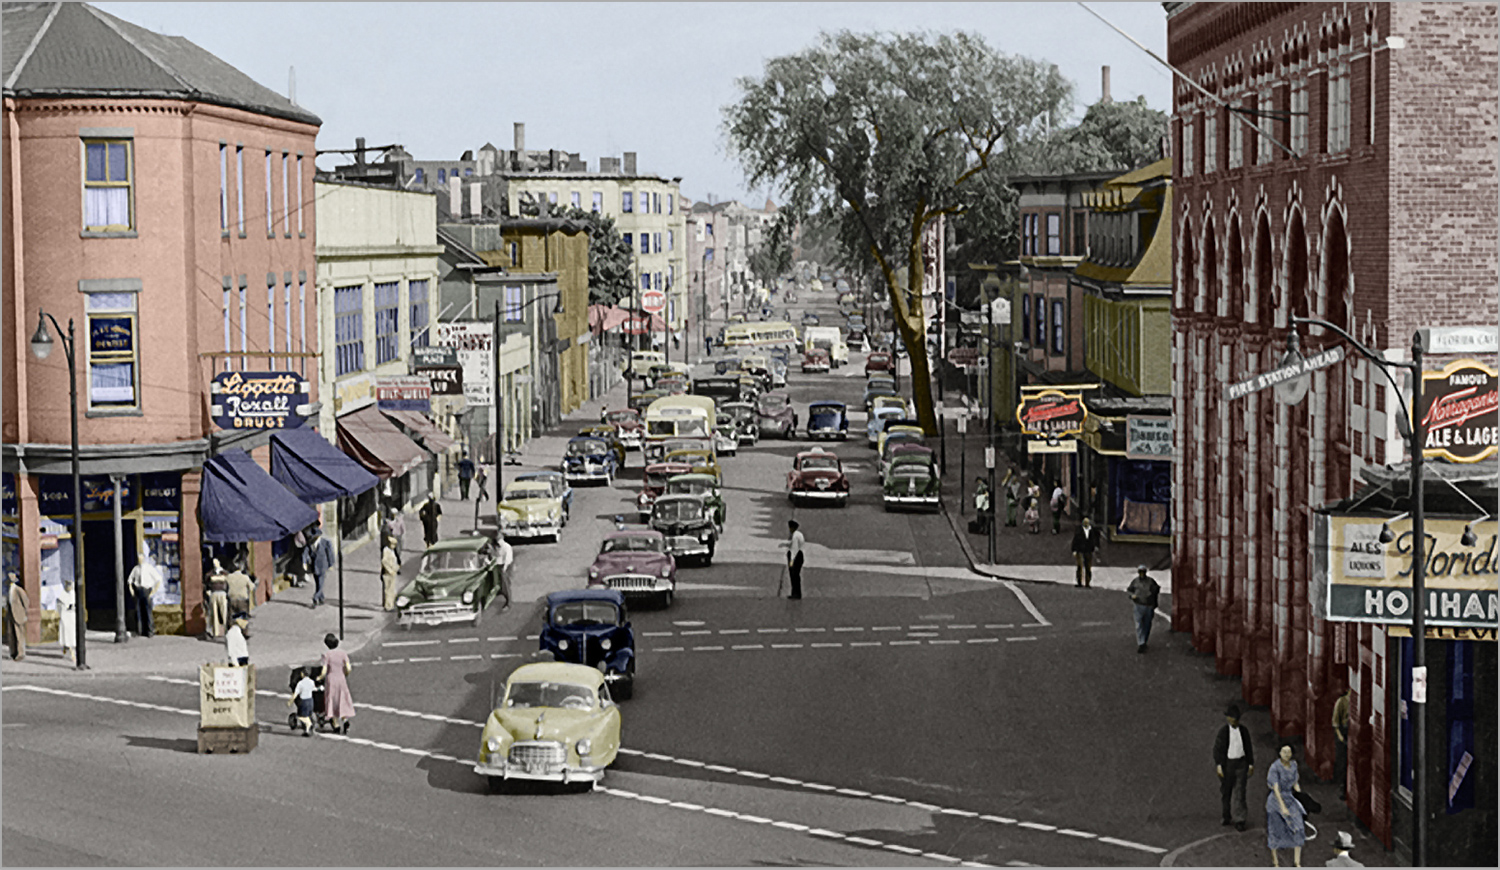 Inman Square in the 1940s